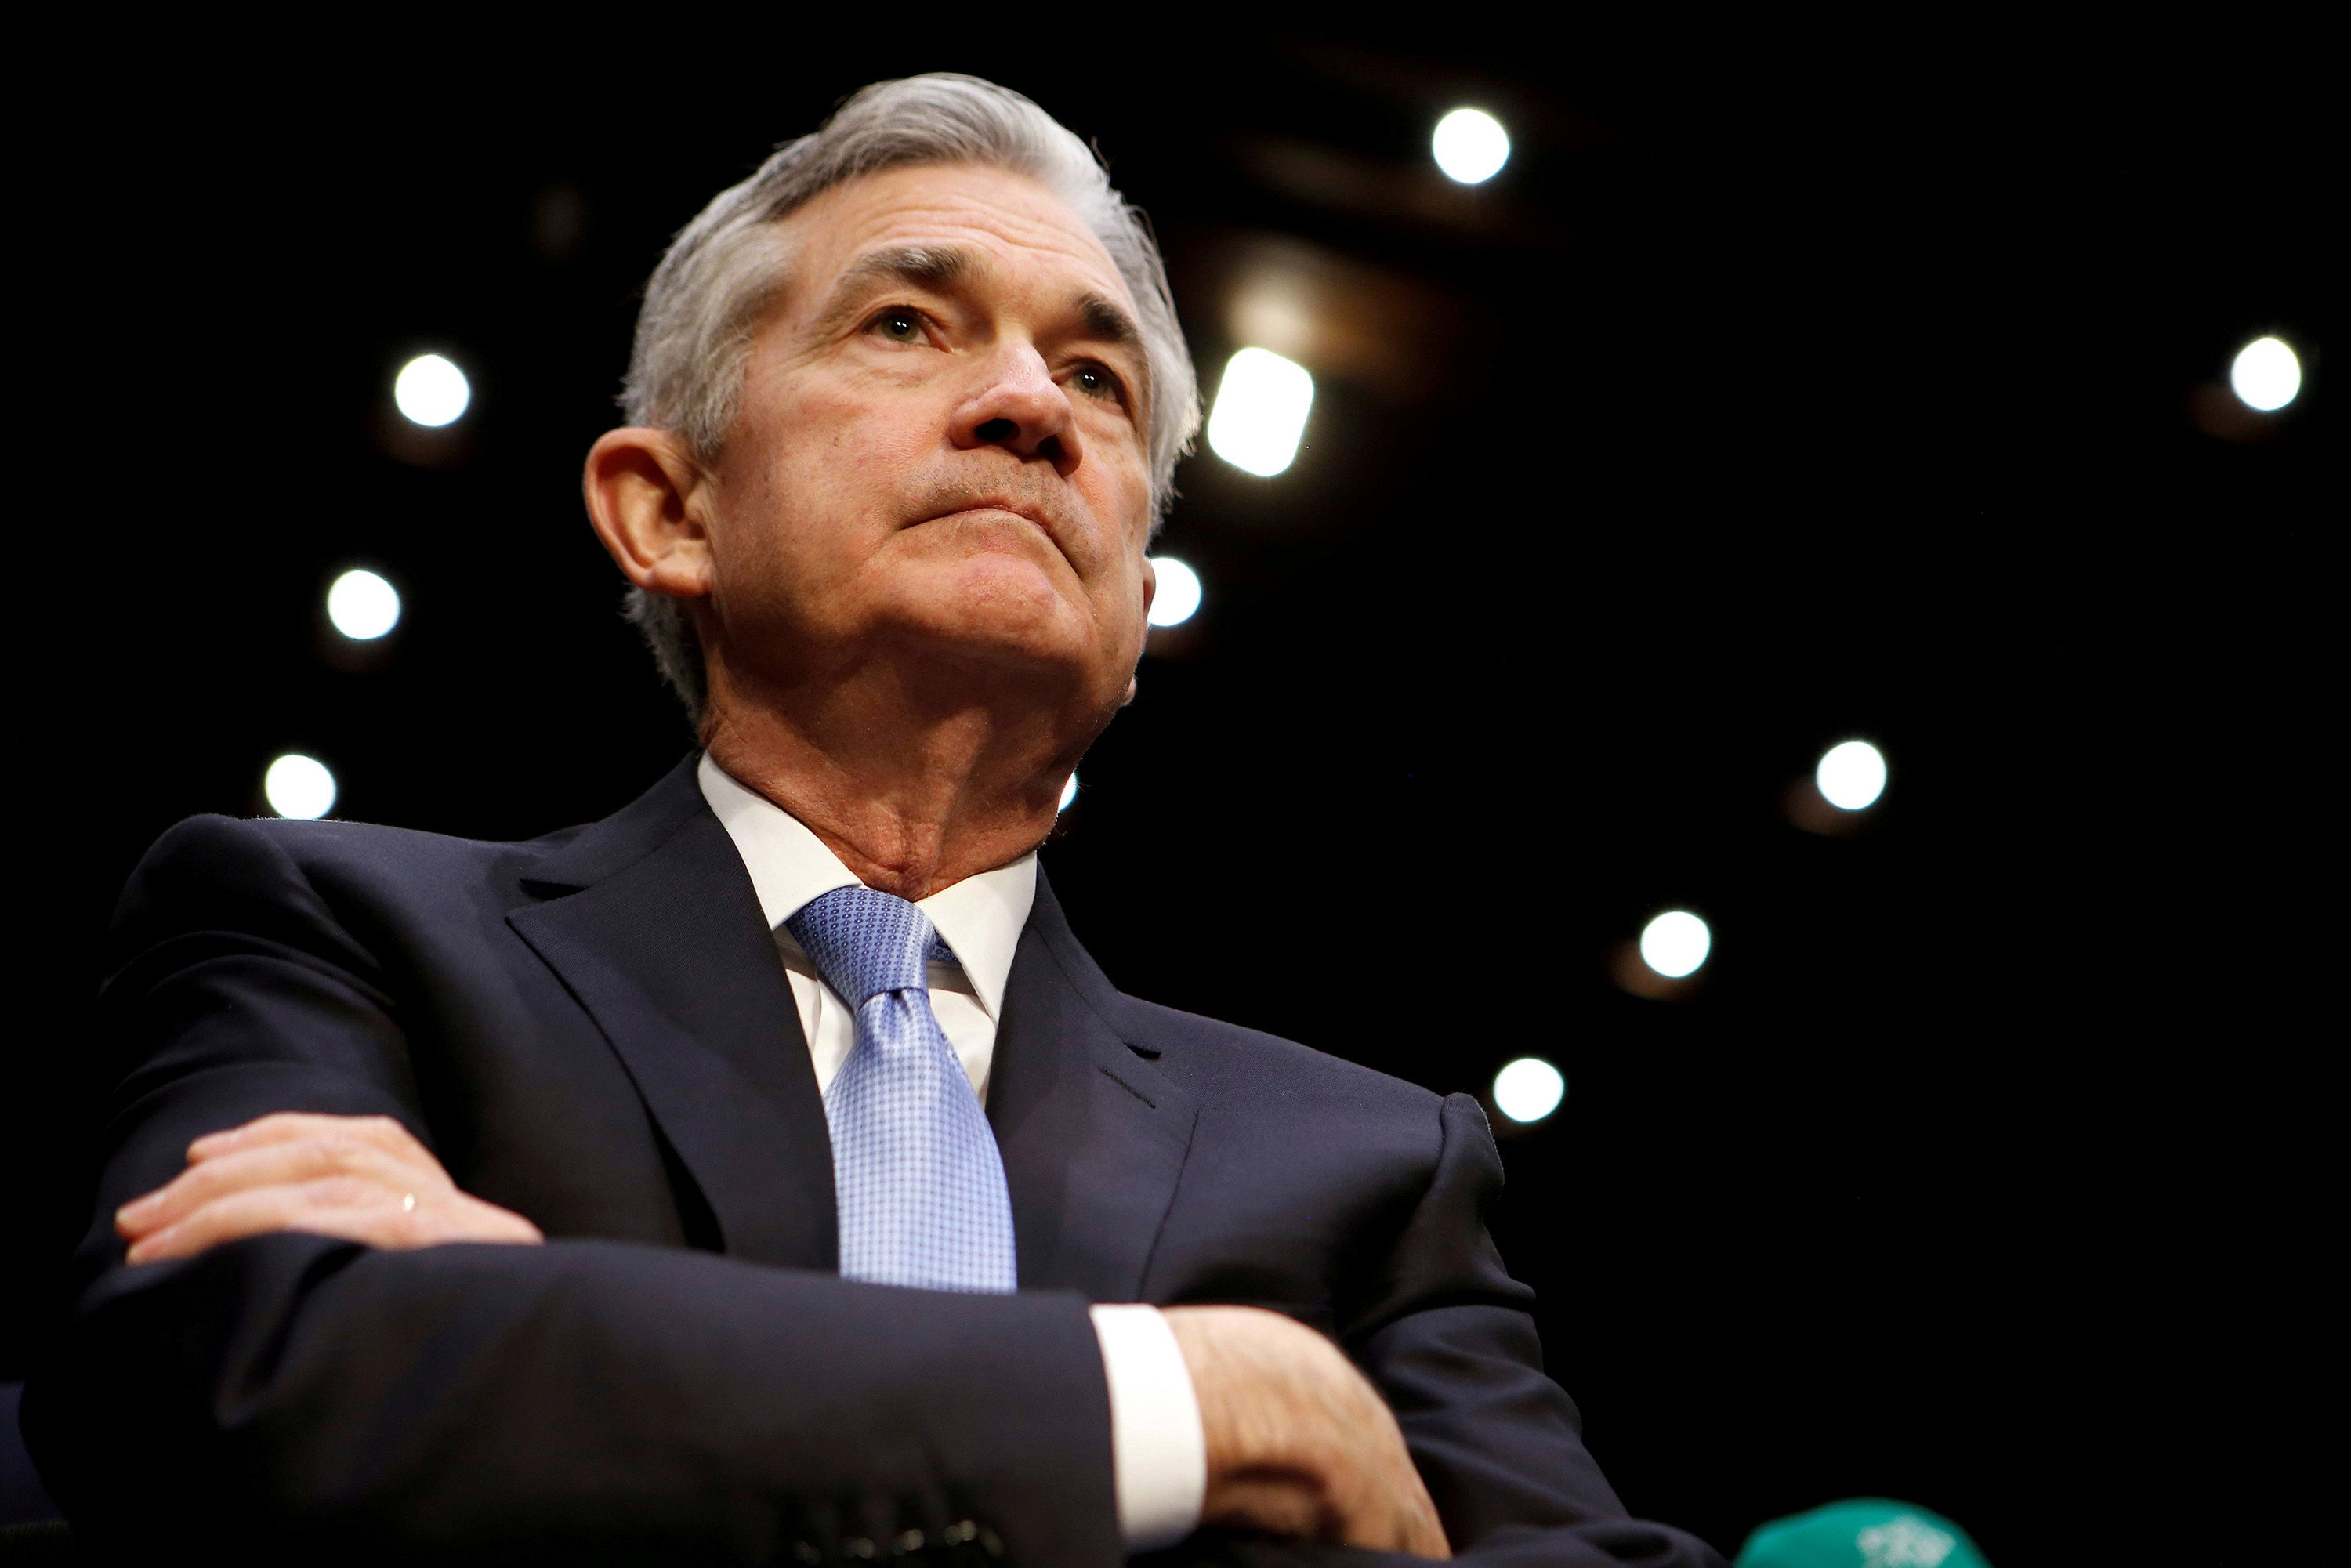 New Fed chairman isn't afraid to raise rates amid market turmoil